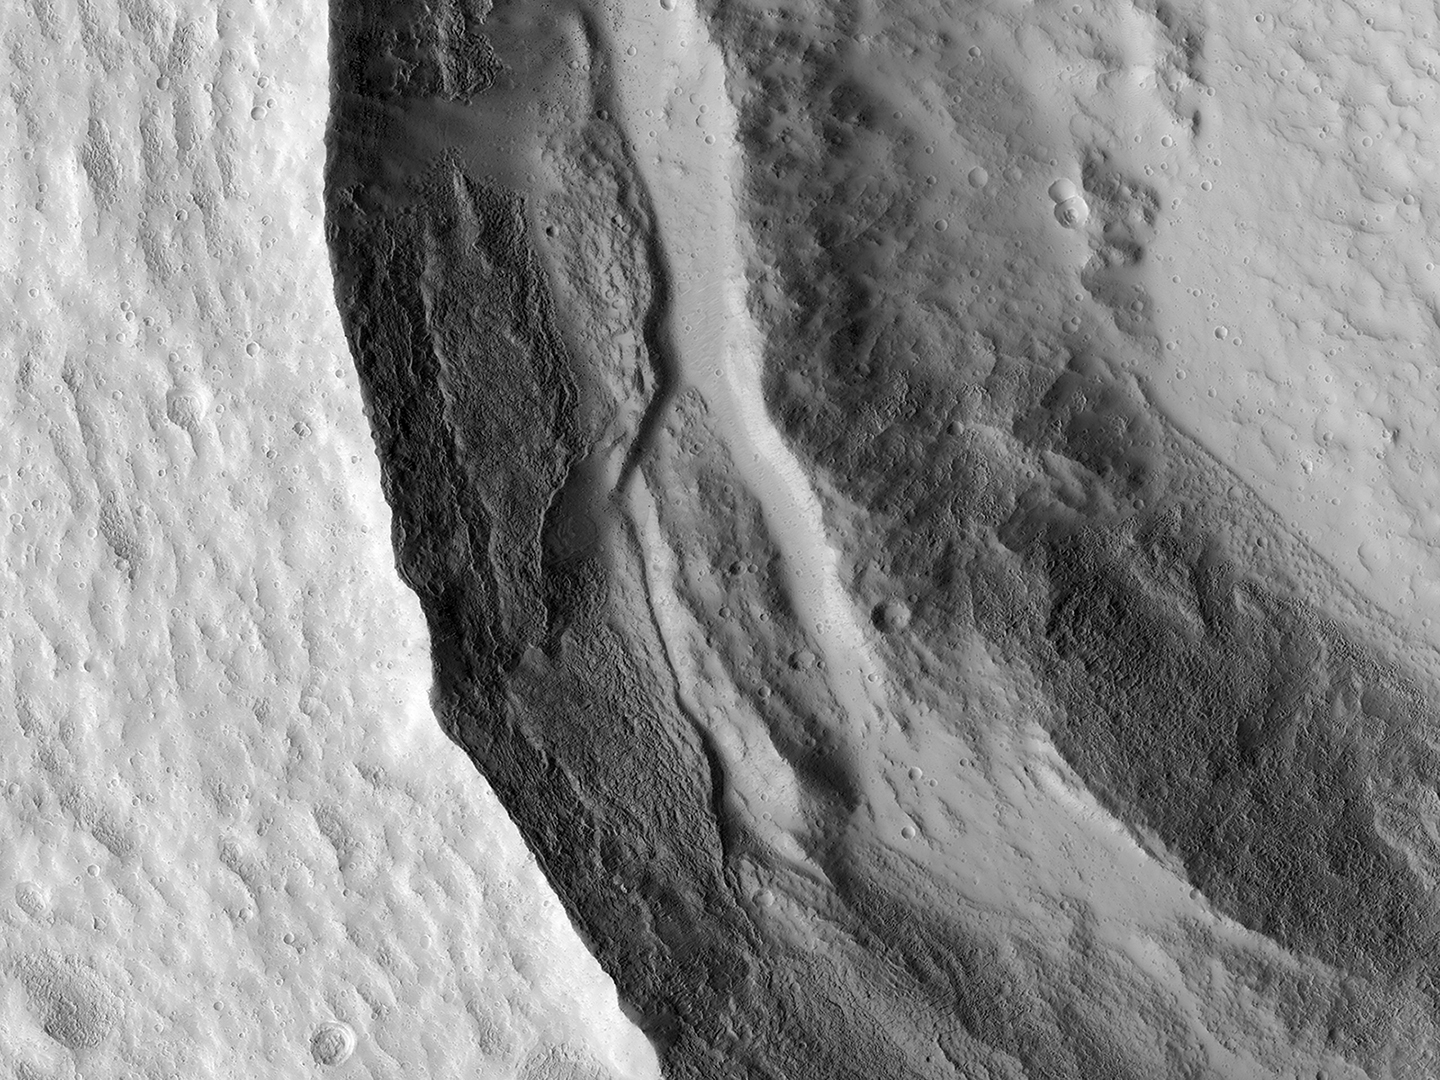 Slumping Terraces On A Crater Wall (ESP_035702_2270